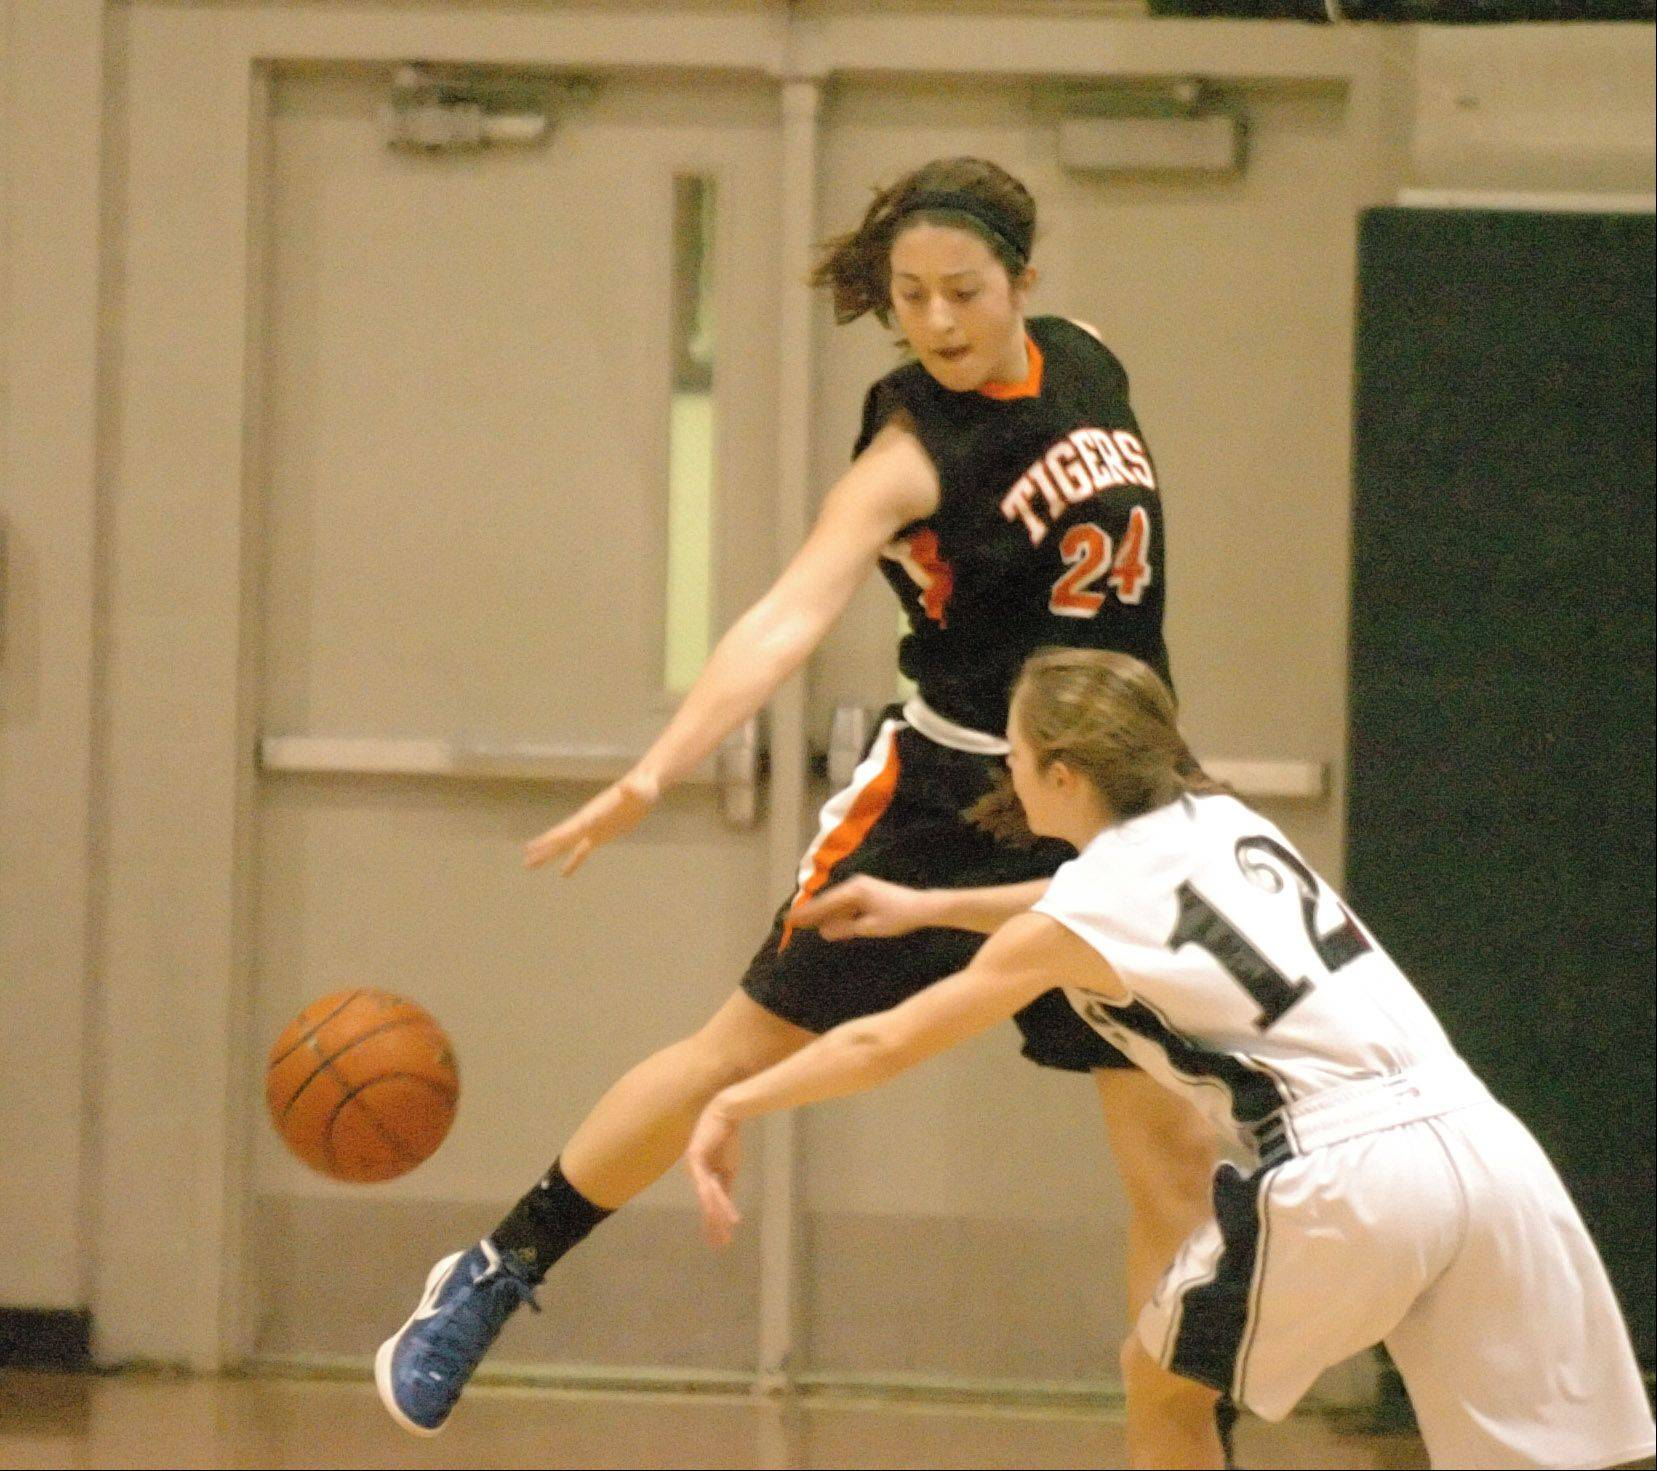 Maggie Dansdill blocks a pass from Mae Elizabeth Gimre of West Chicago during the Wheaton Warrenville South at West Chicago girls basketball game Saturday.